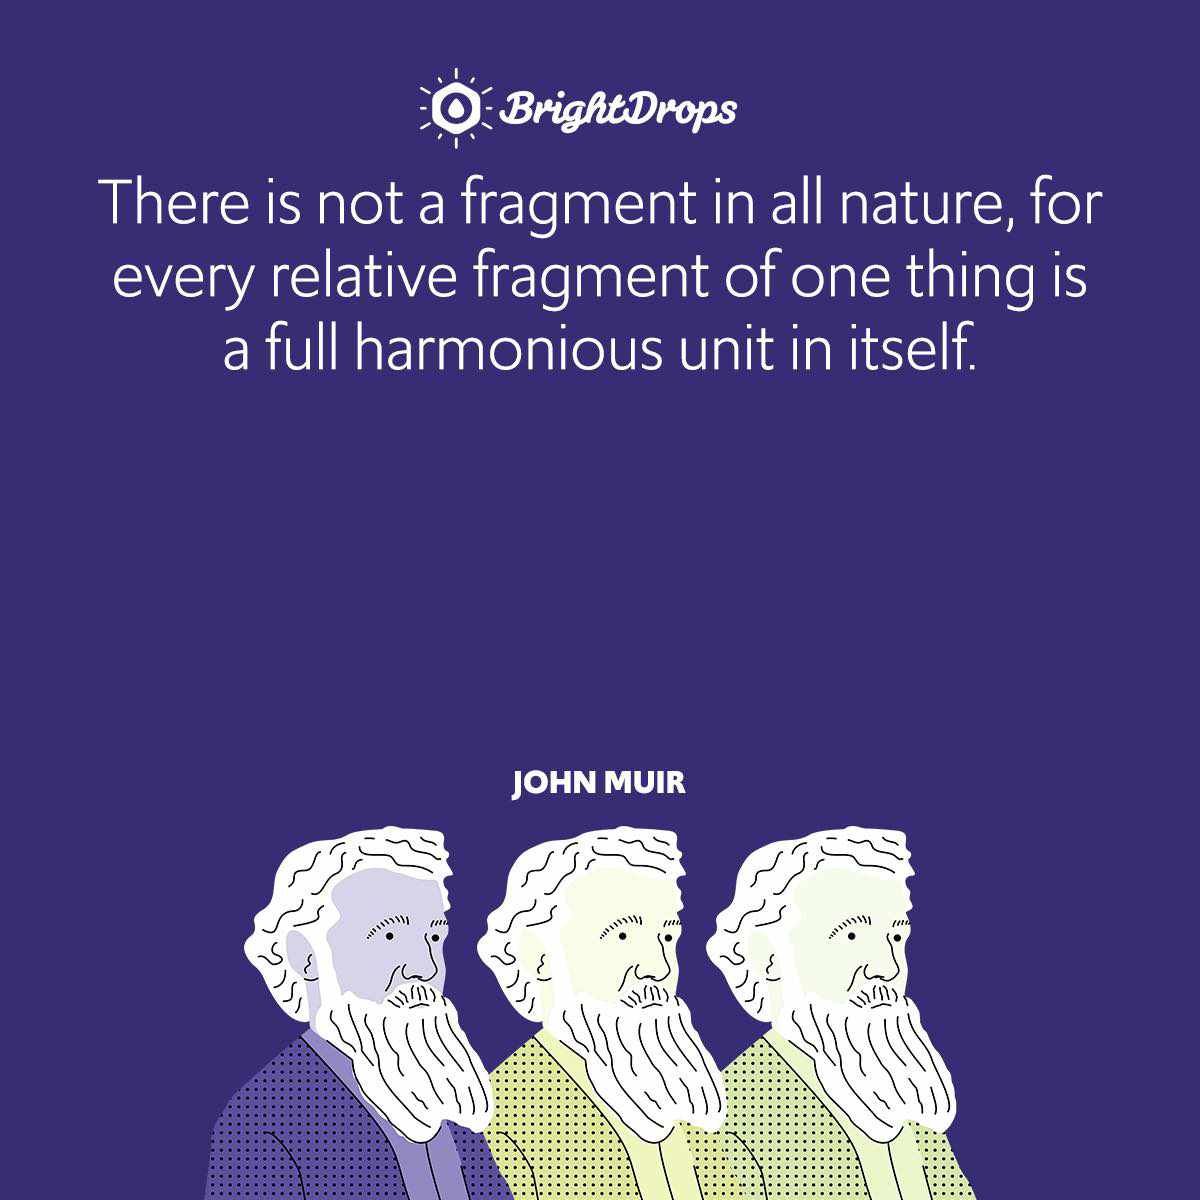 There is not a fragment in all nature, for every relative fragment of one thing is a full harmonious unit in itself.